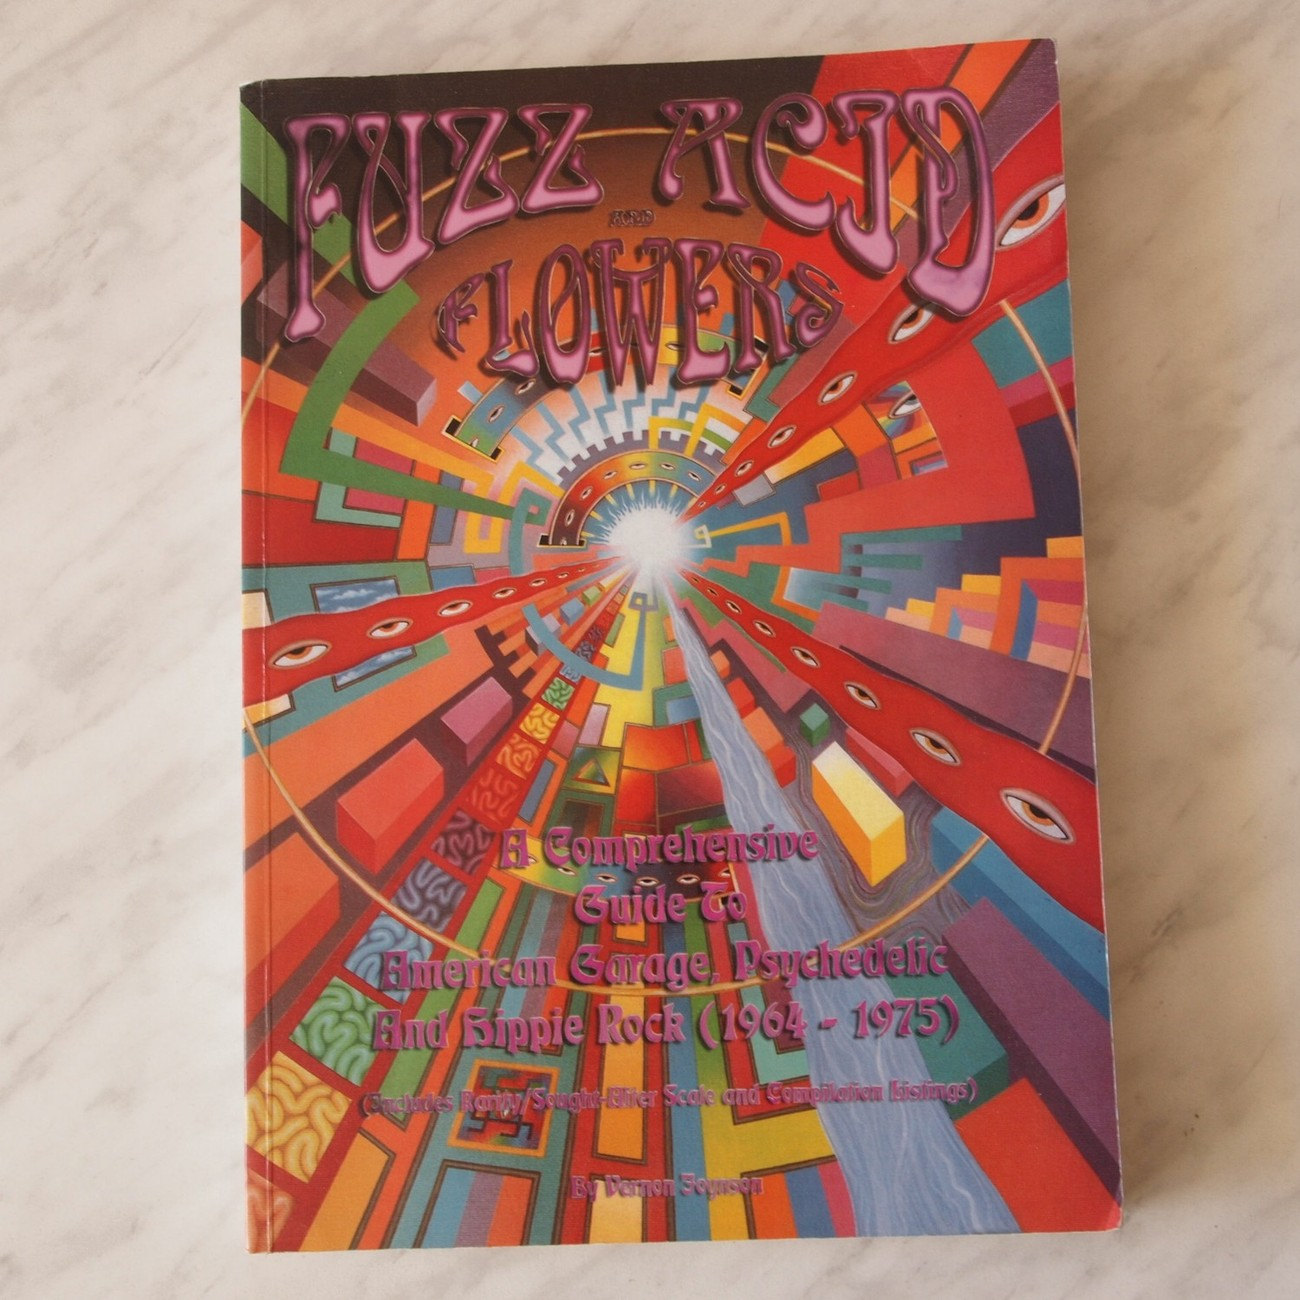 Fuzz Acid and Flowers-A Guide to Hippie Rock, Psychedelic and Garage Music Book